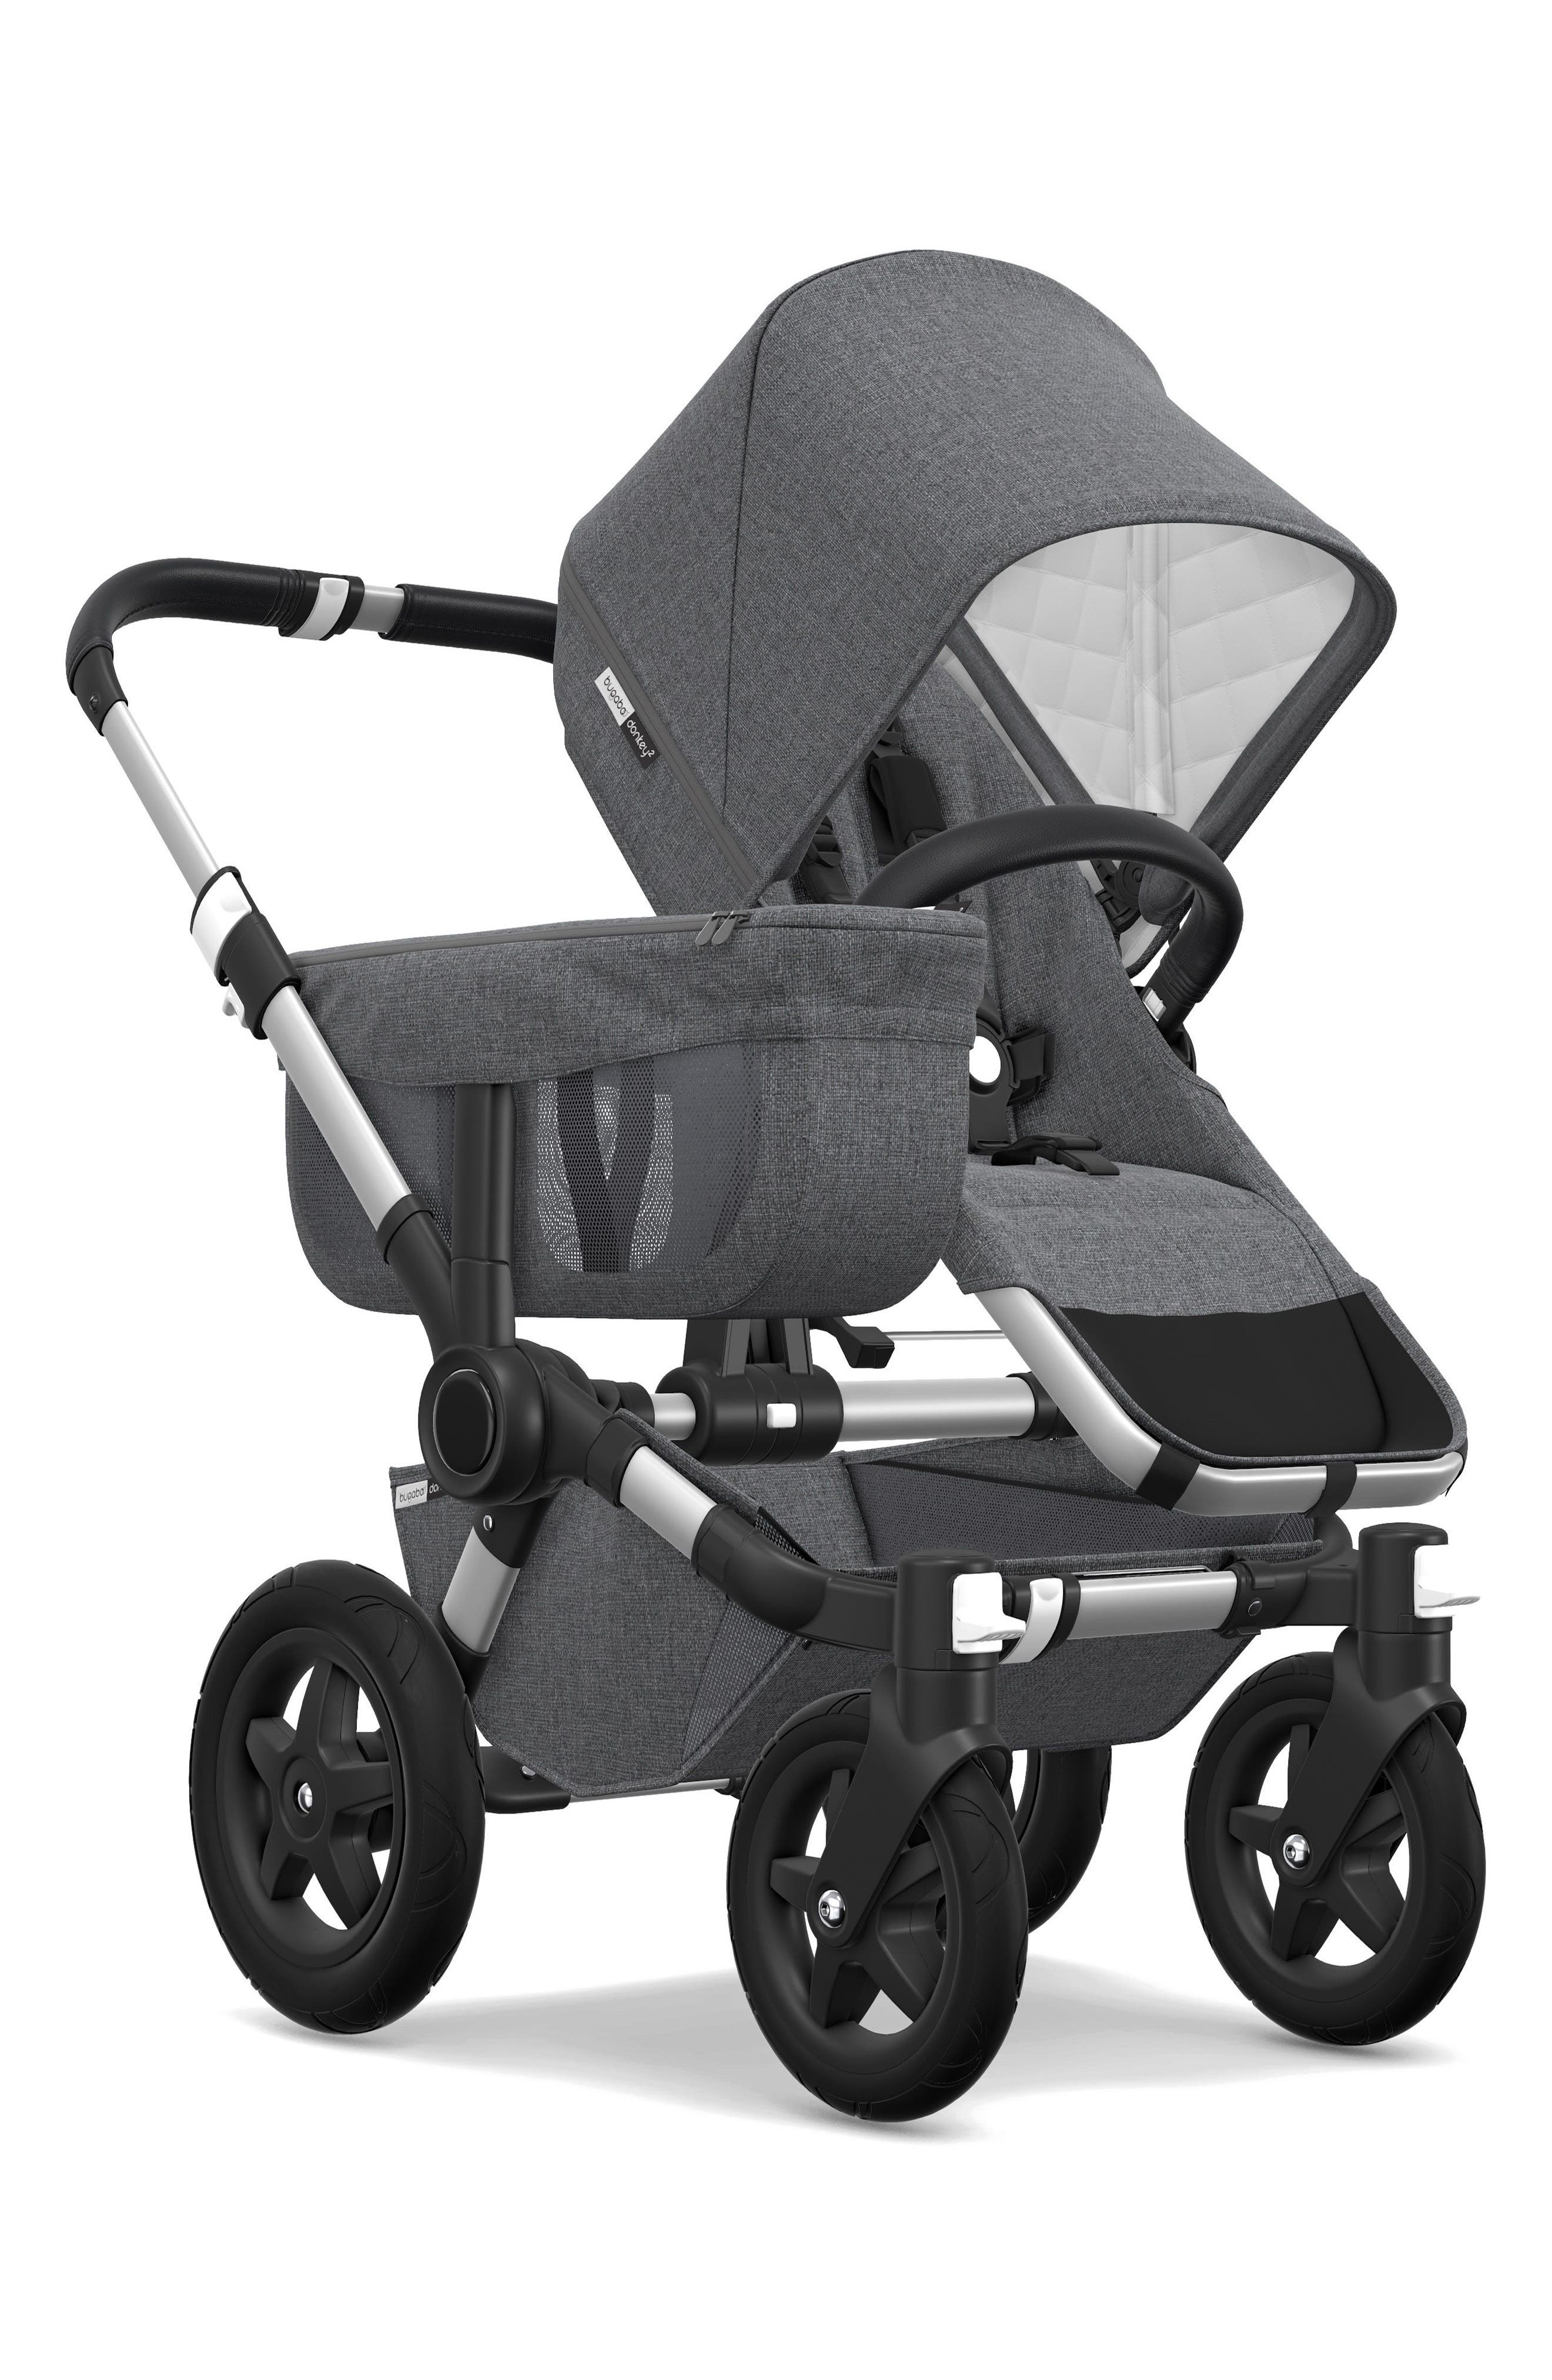 Donkey2 Classic Mono Complete Stroller with Bassinet,                             Alternate thumbnail 2, color,                             GREY MELANGE/ ALUMINUM